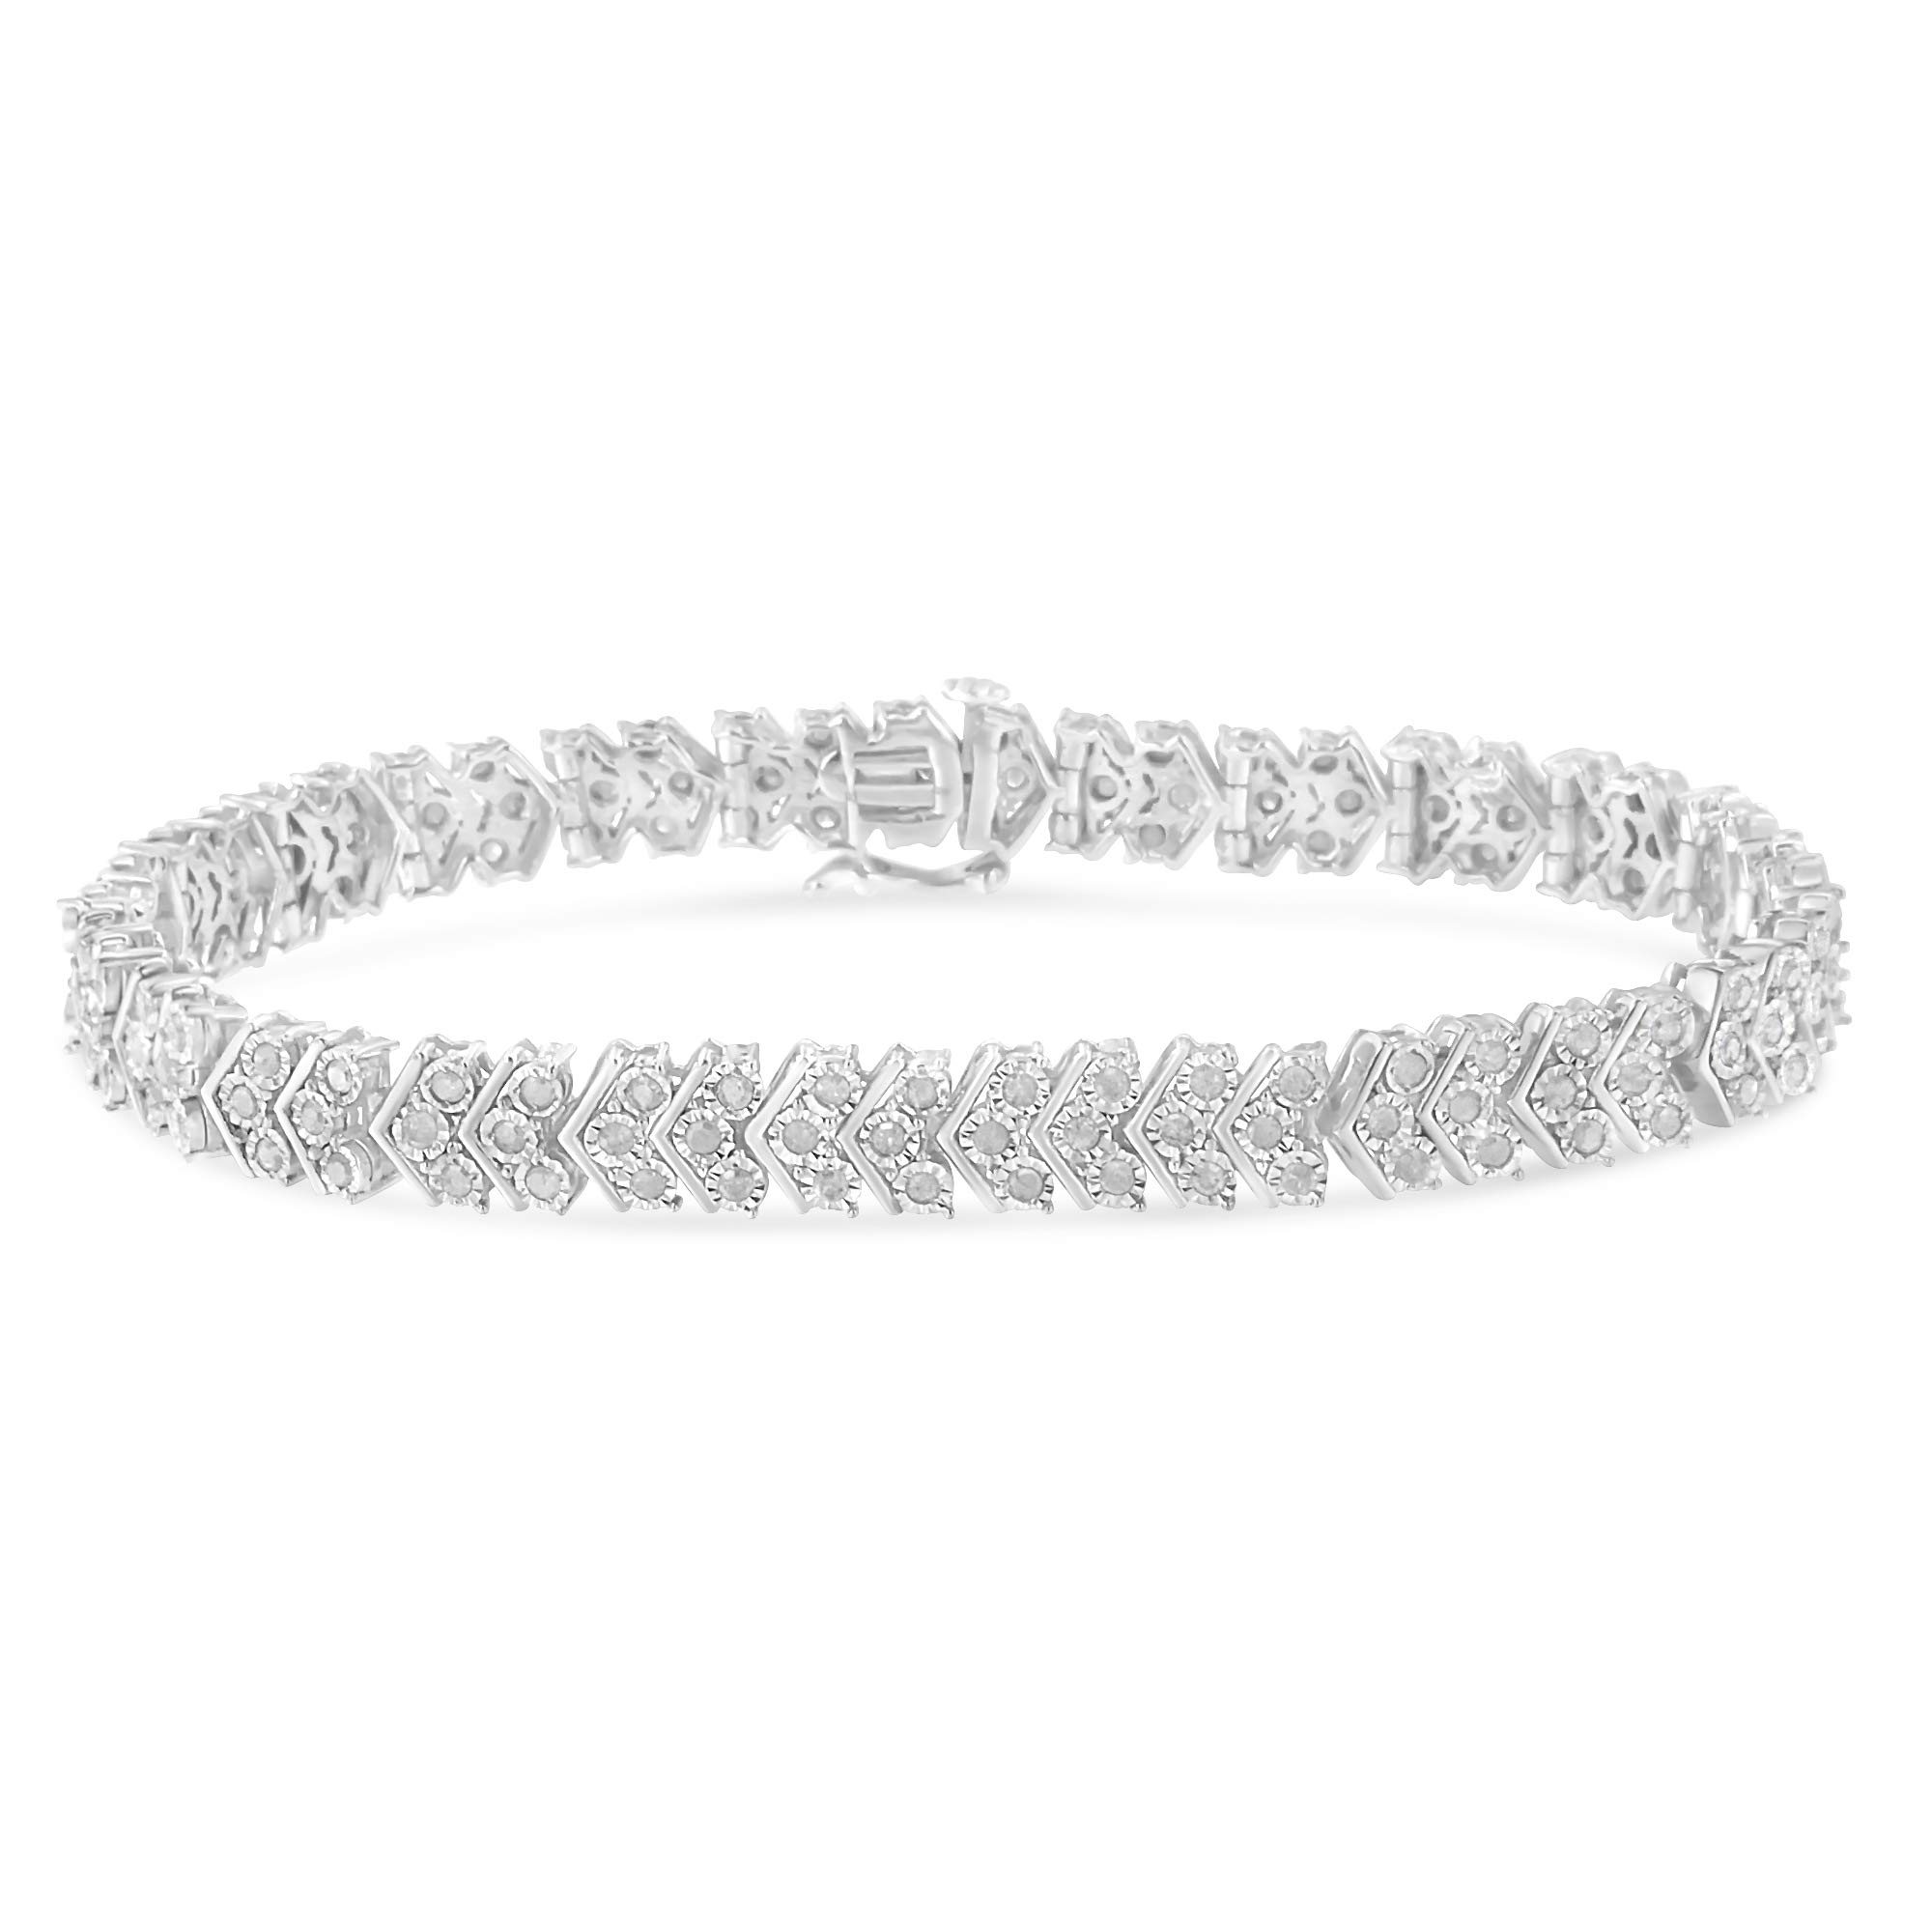 Sterling Silver Diamond Tennis Bracelet (2.15 cttw, I-J Color, I3-Promo Clarity) by Original Classics